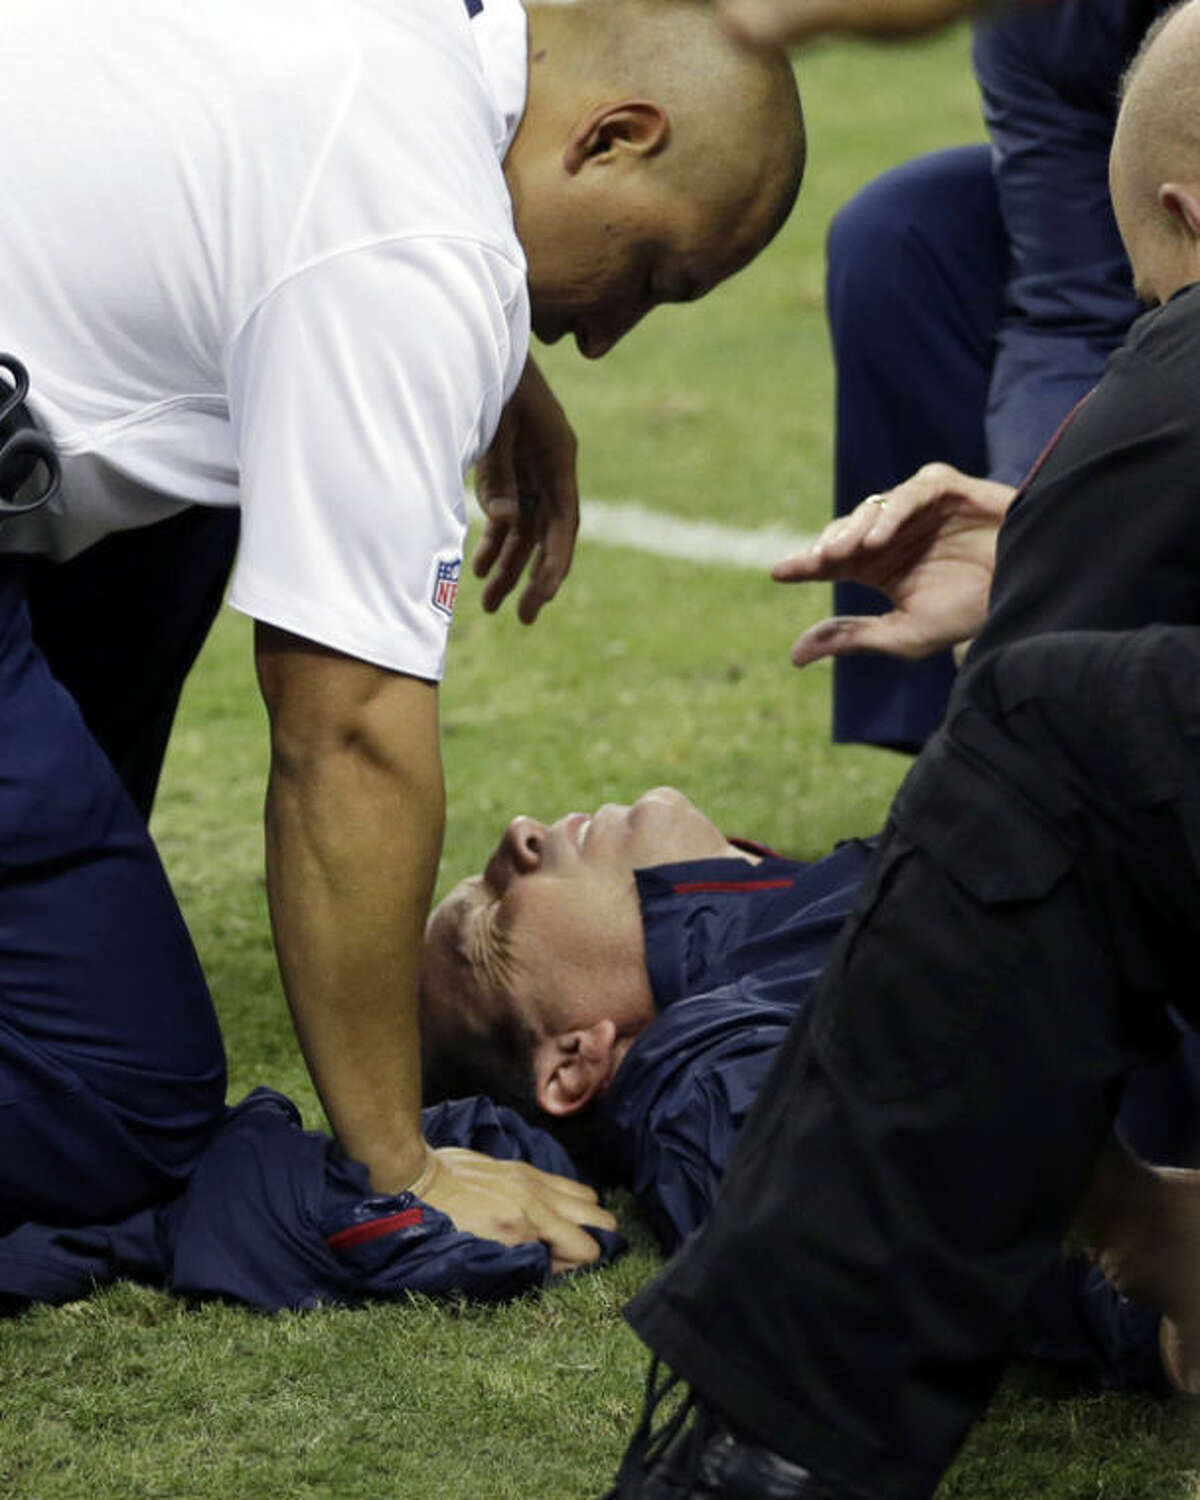 Houston Texans head coach Gary Kubiak, center, is helped after he collapsed on the field during the second quarter of an NFL football game against the Indianapolis Colts, Sunday, Nov. 3, 2013, in Houston. (AP Photo/David J. Phillip)